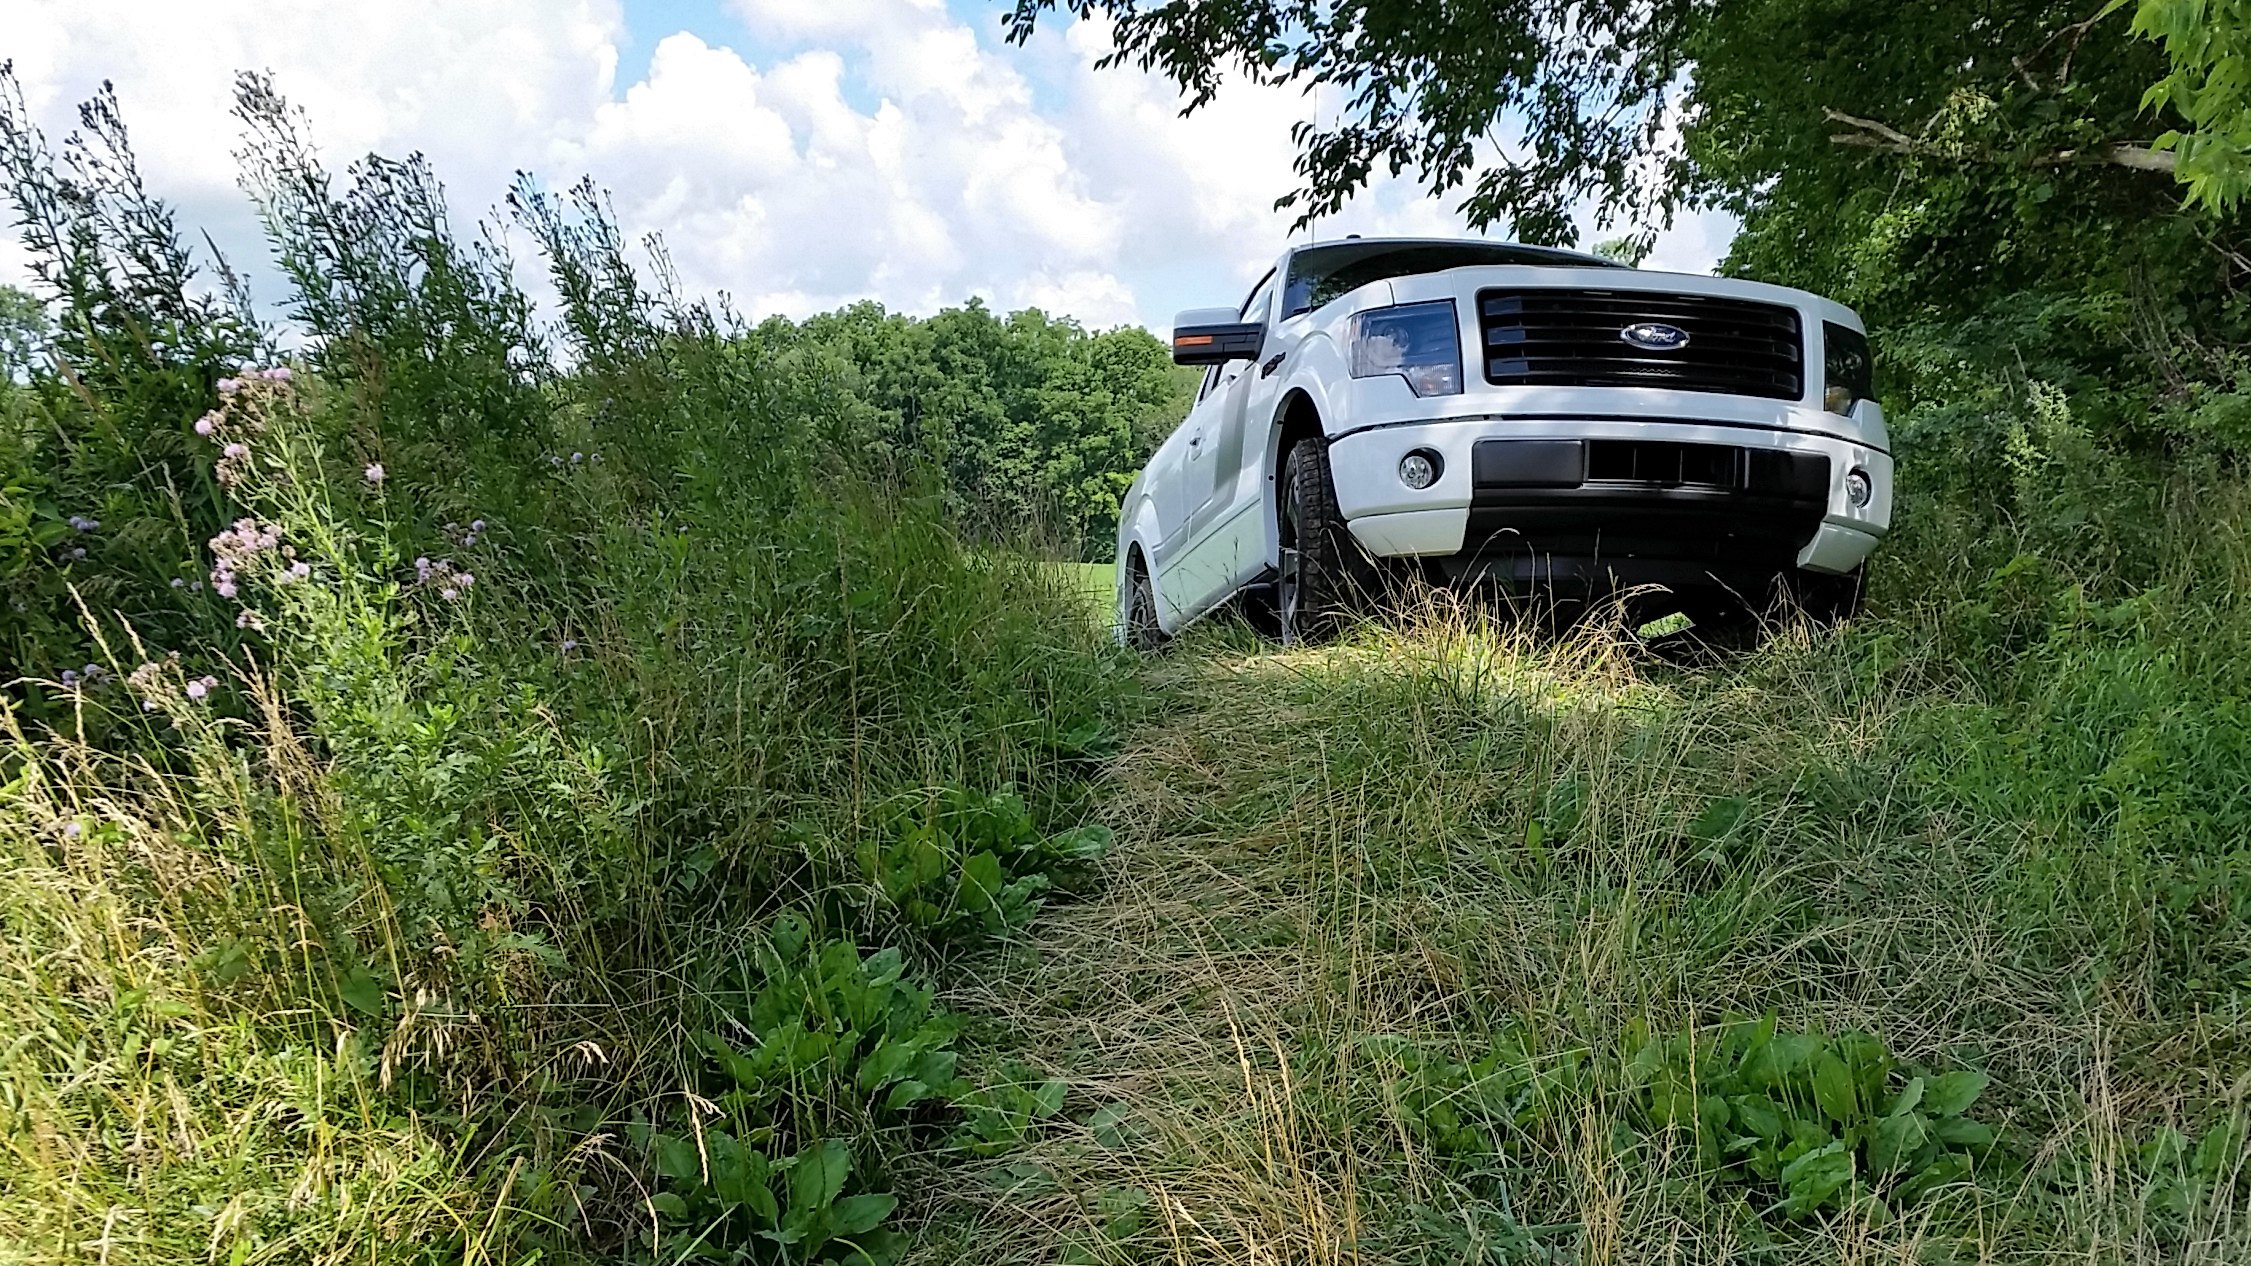 Ford F 150 Tremor >> 2014 Ford F-150 Tremor Review